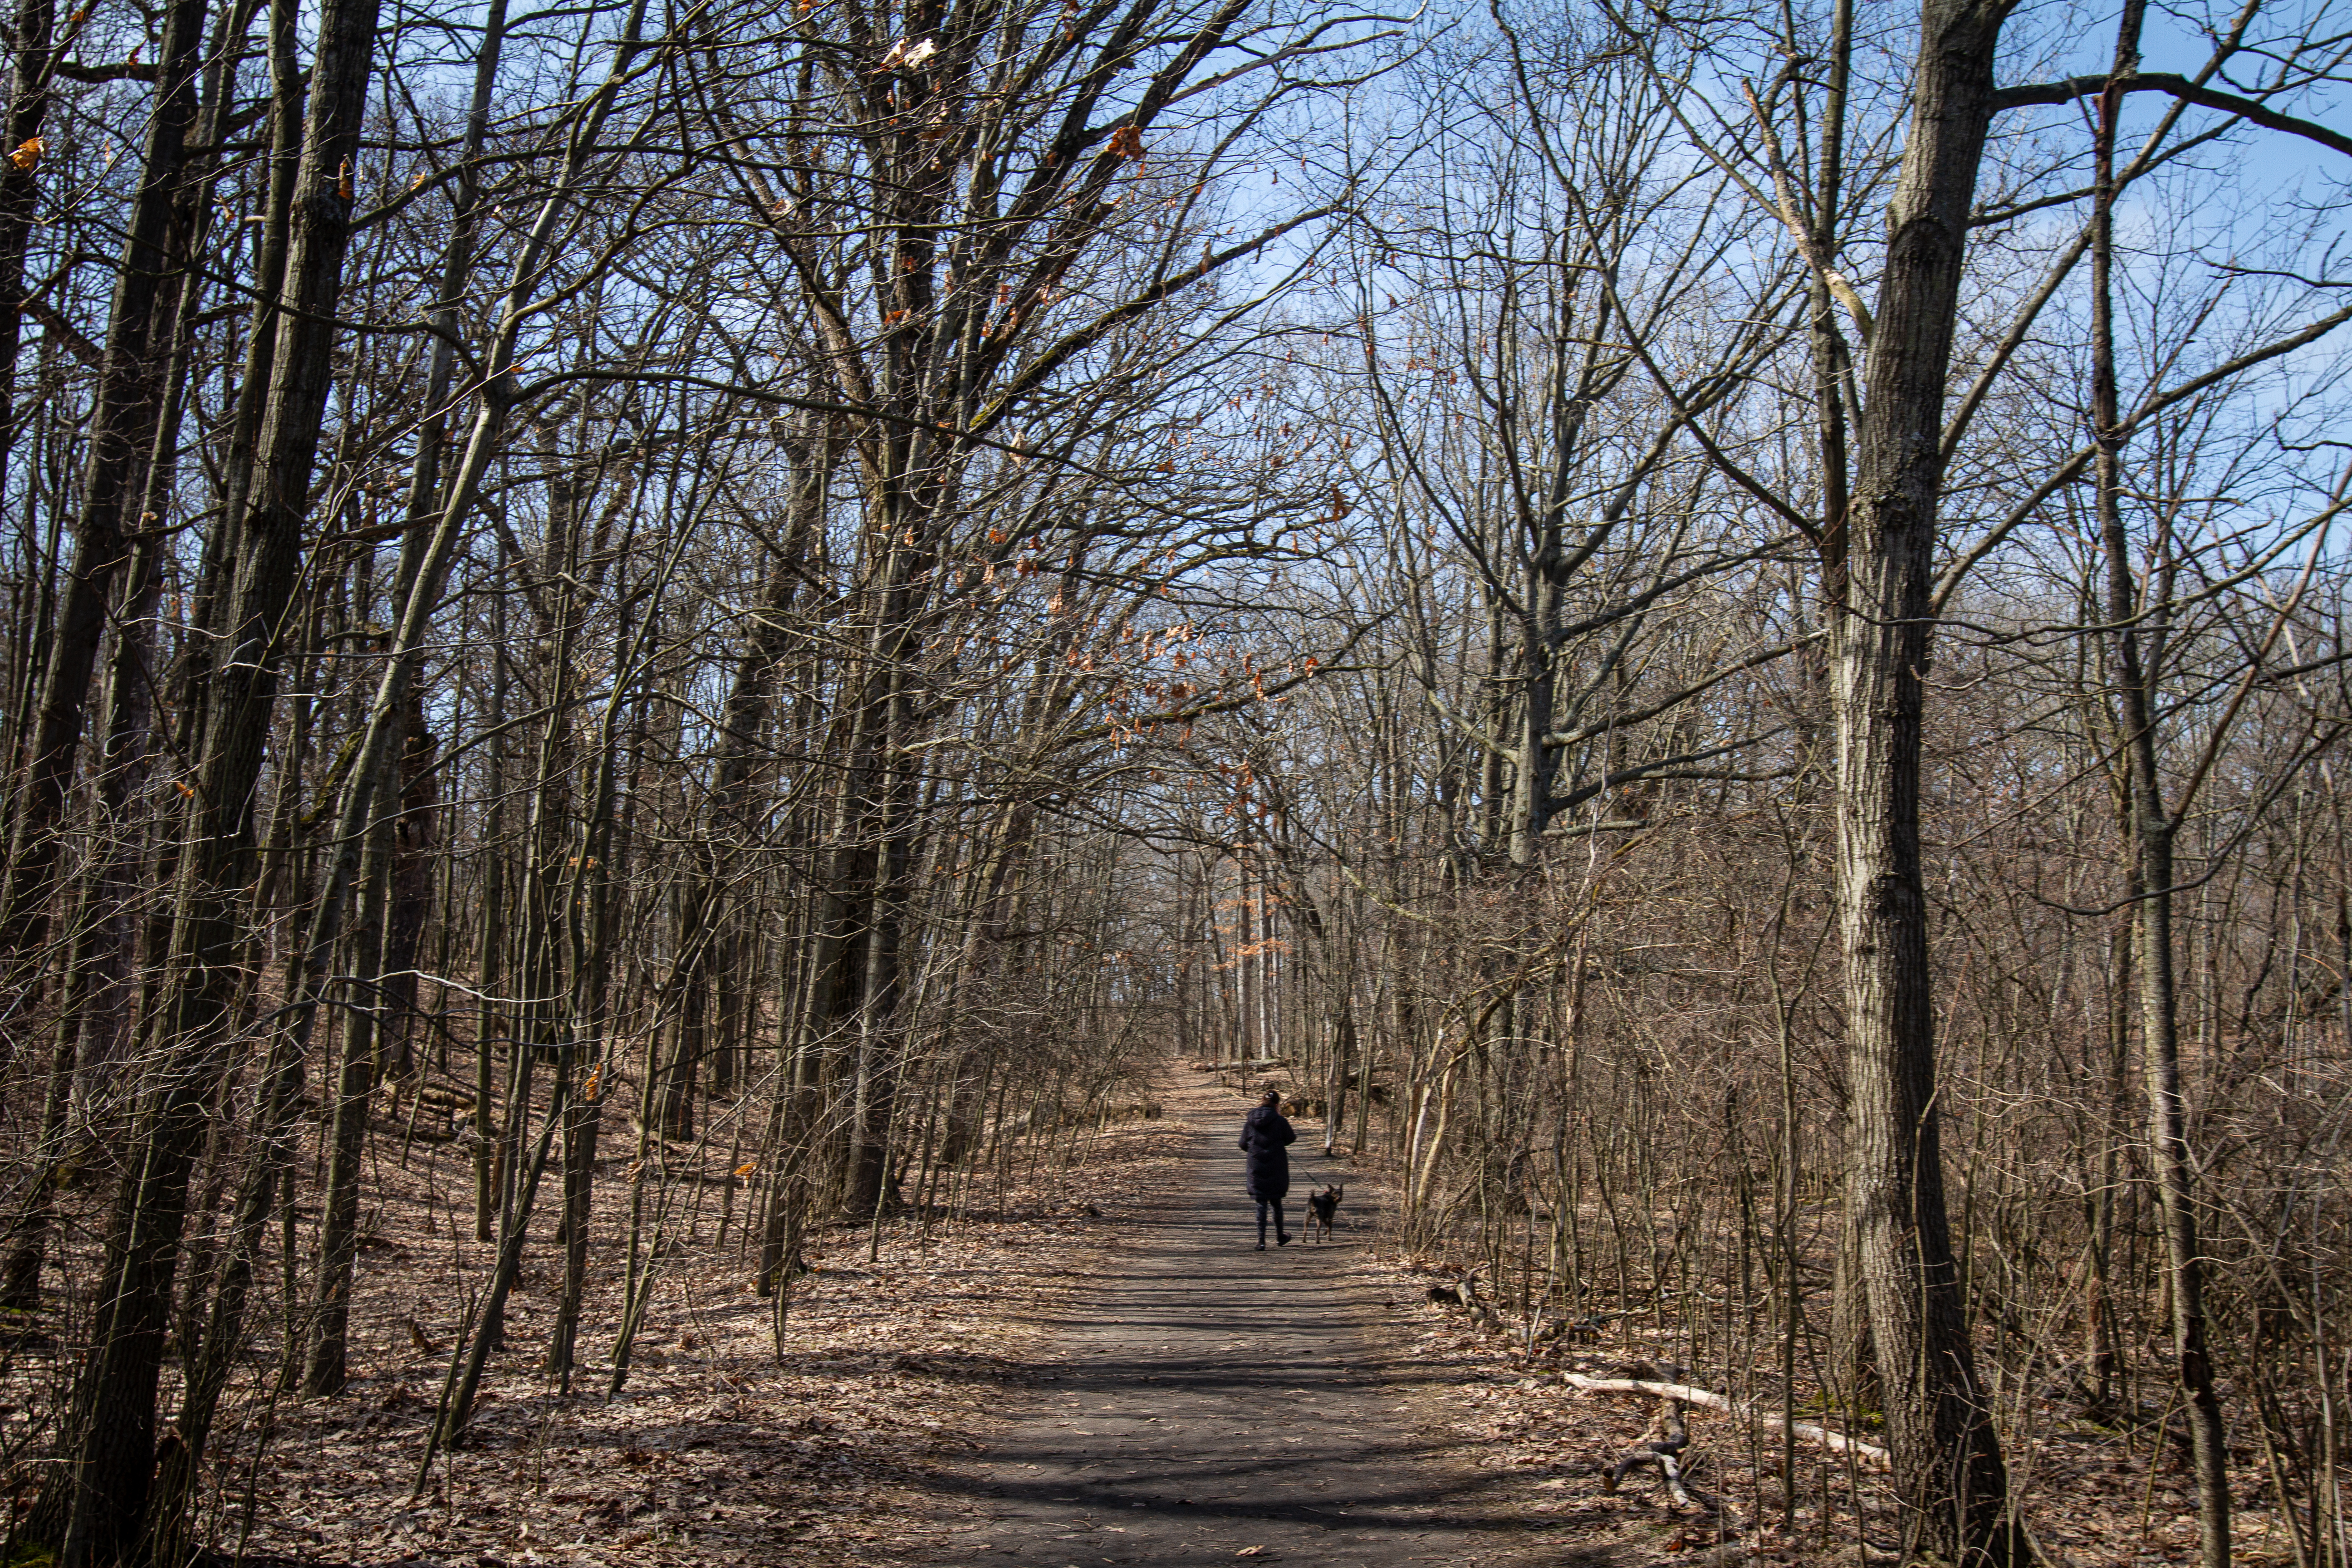 A Kalamazoo resident walks her dog at Aslyum Lake Preserve on Wednesday, March 25. (WWMT/Sarah White)